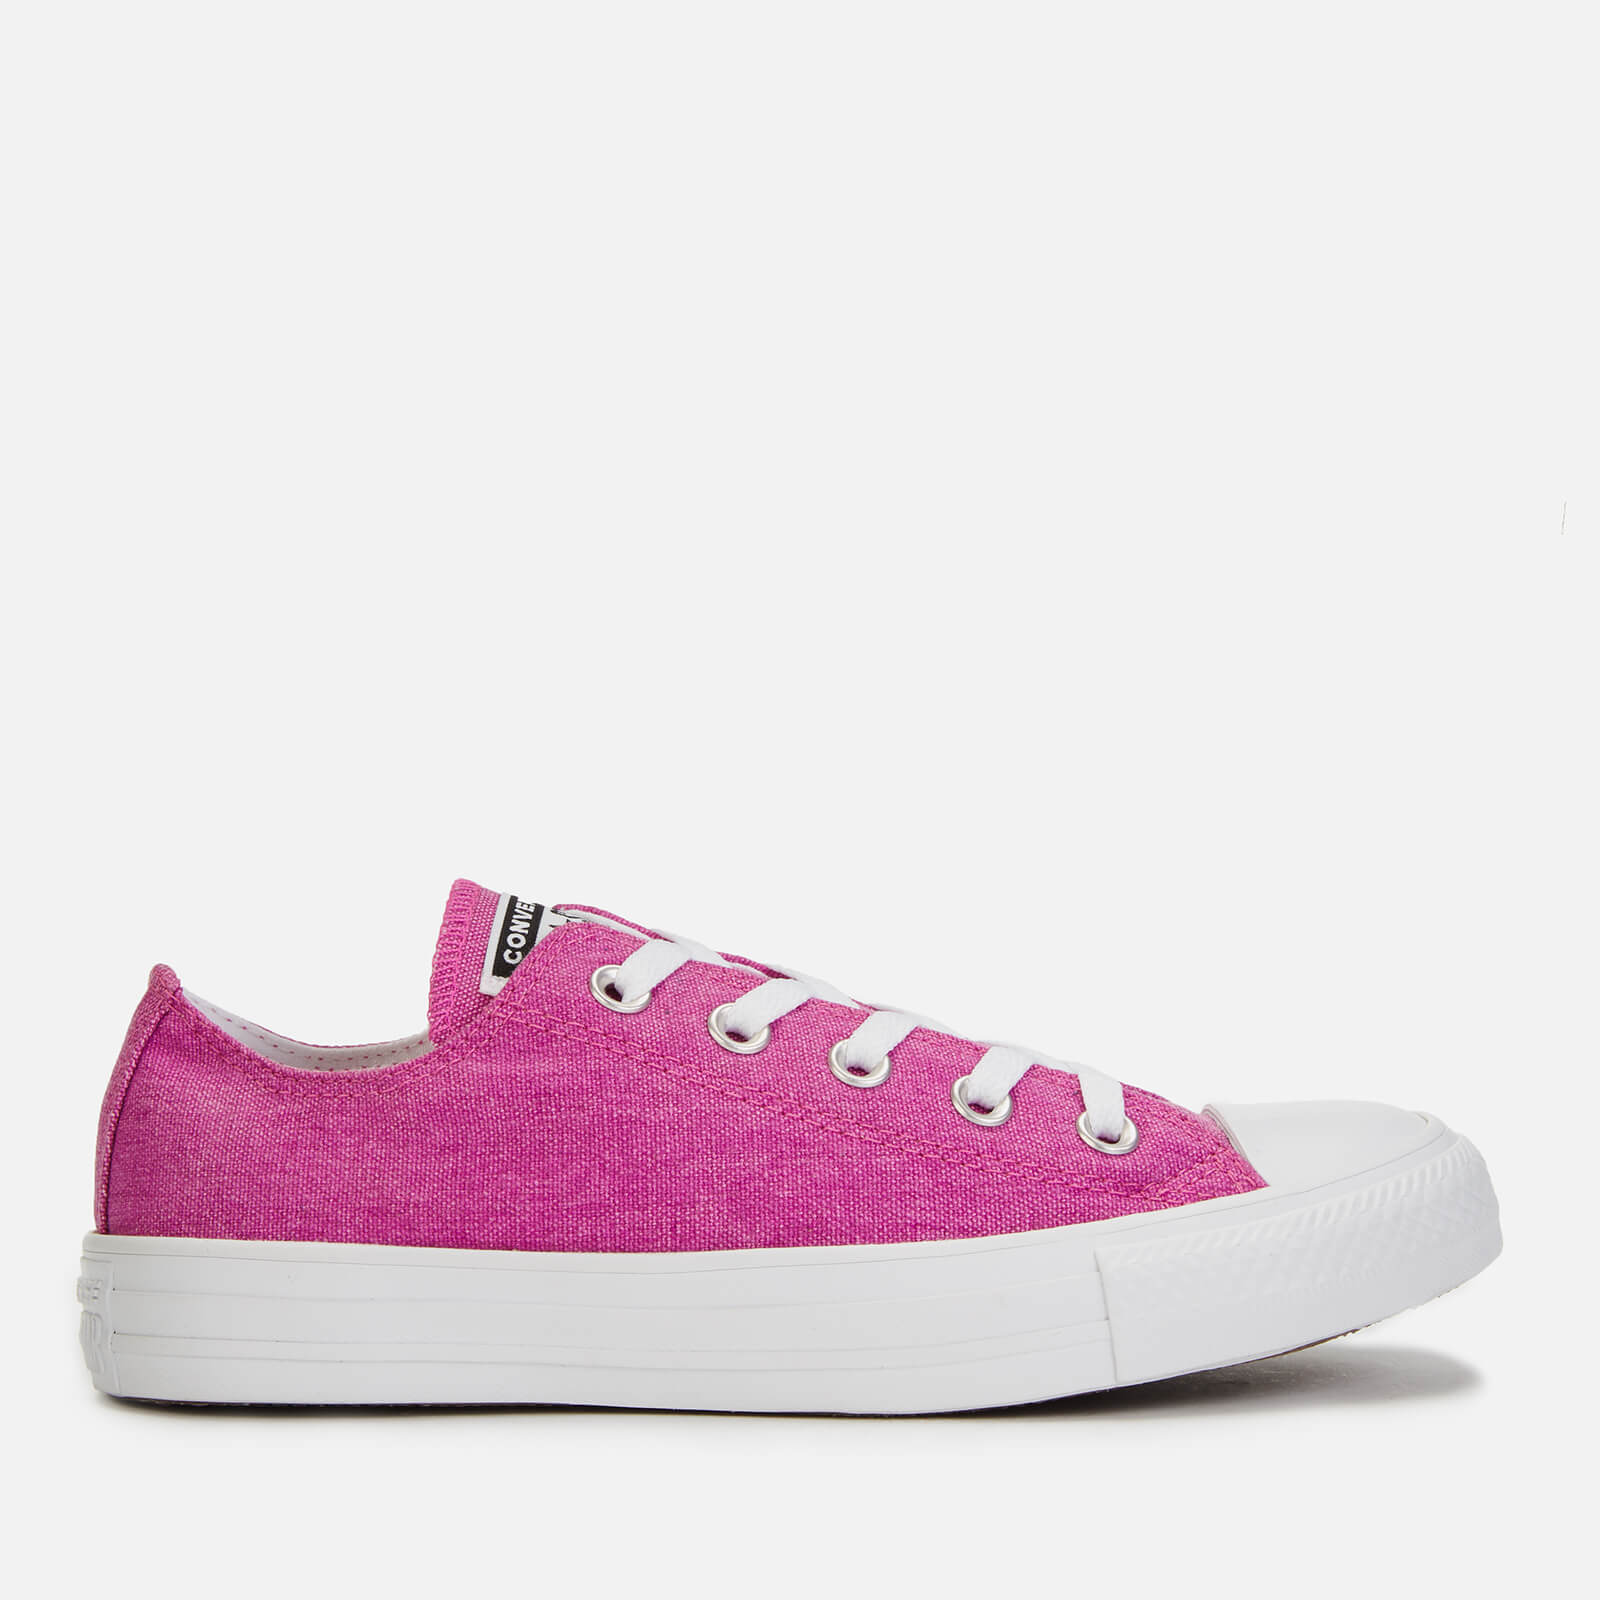 Converse Women's Chuck Taylor All Star Court Fade Ox Trainers - Active Fuchsia/White/White - UK 4 - Pink